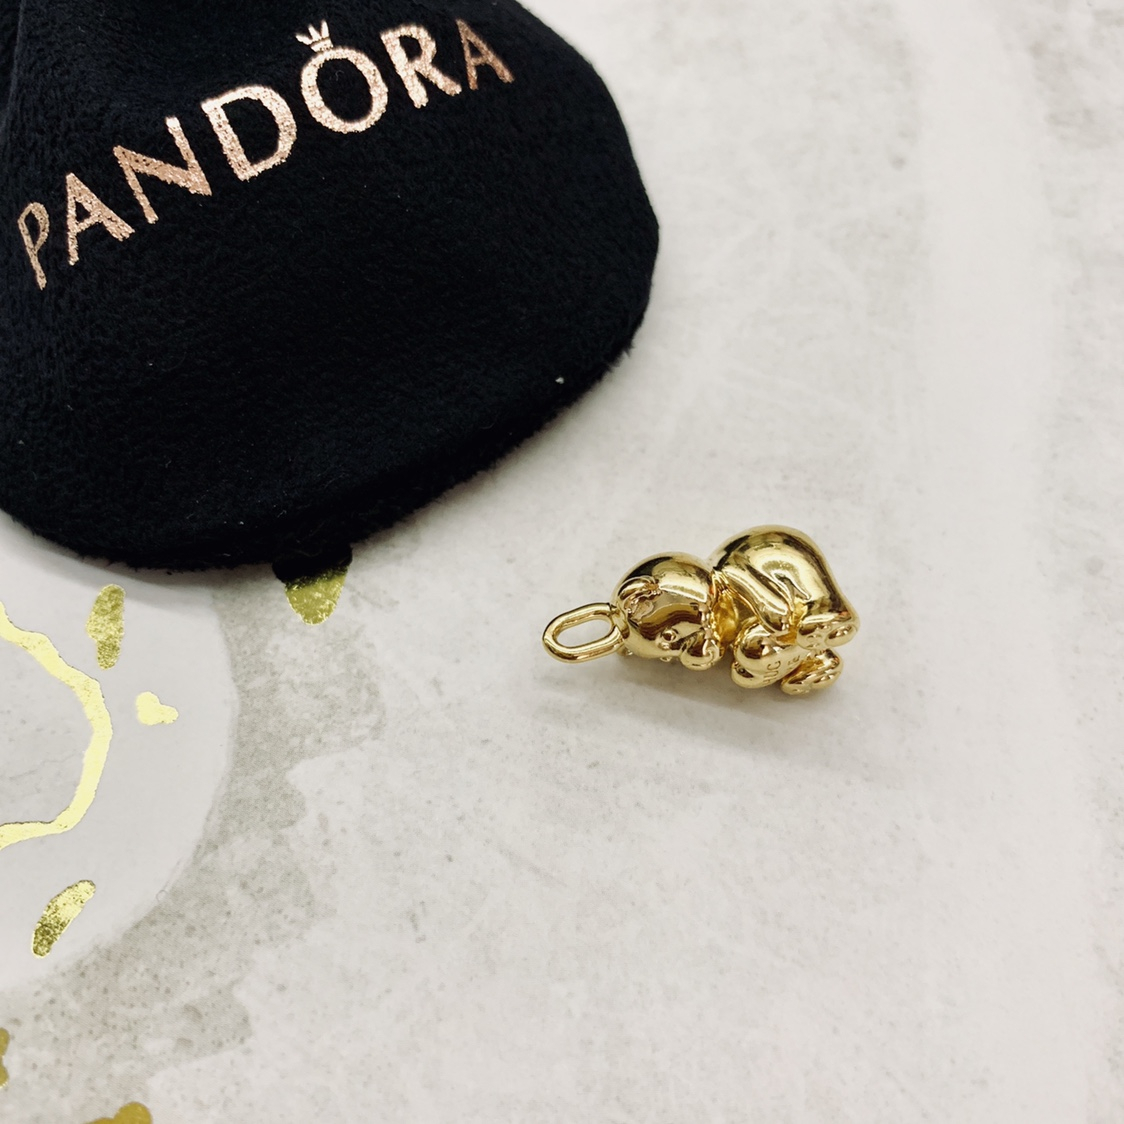 Pandora Shine Theodore Bear Pendant (not For A – Depop Inside Most Up To Date Theodore Bear Pendant Necklaces (View 11 of 25)